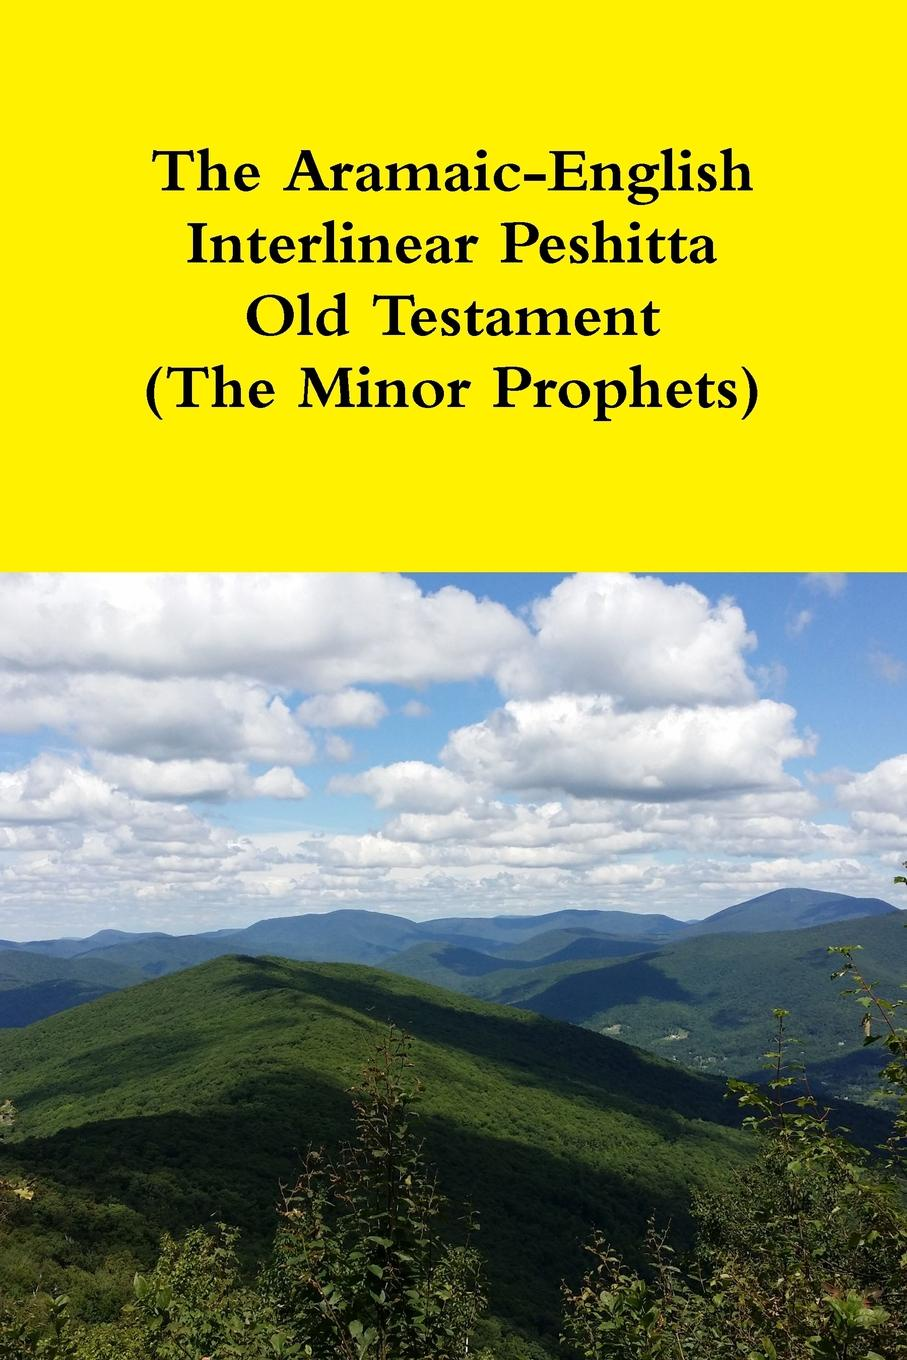 Rev. David Bauscher The Aramaic-English Interlinear Peshitta Old Testament (The Minor Prophets) d w thomas documents from old testament times